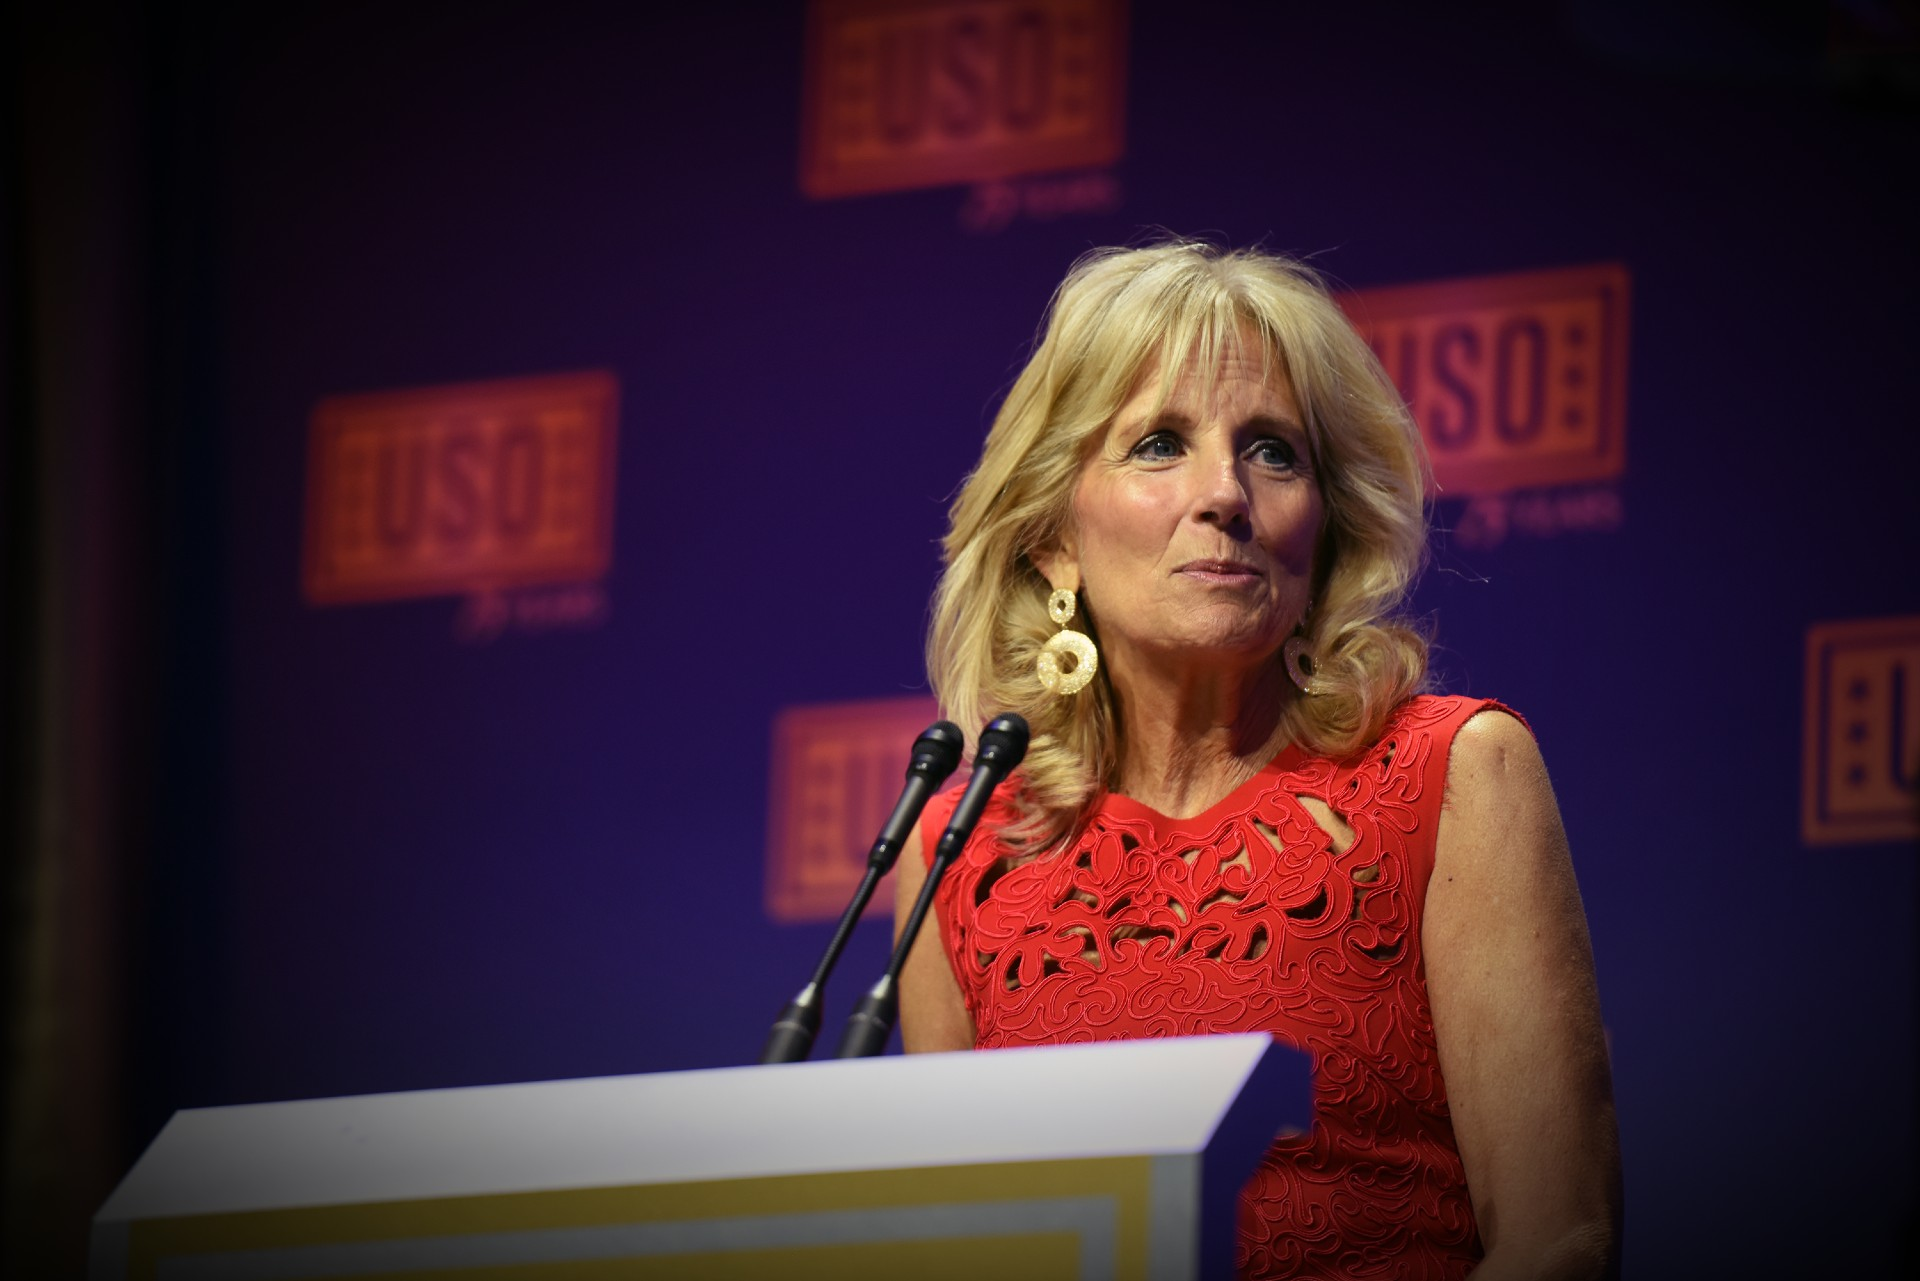 Jill Biden chief of staff visa sale site removed after National Pulse exposé